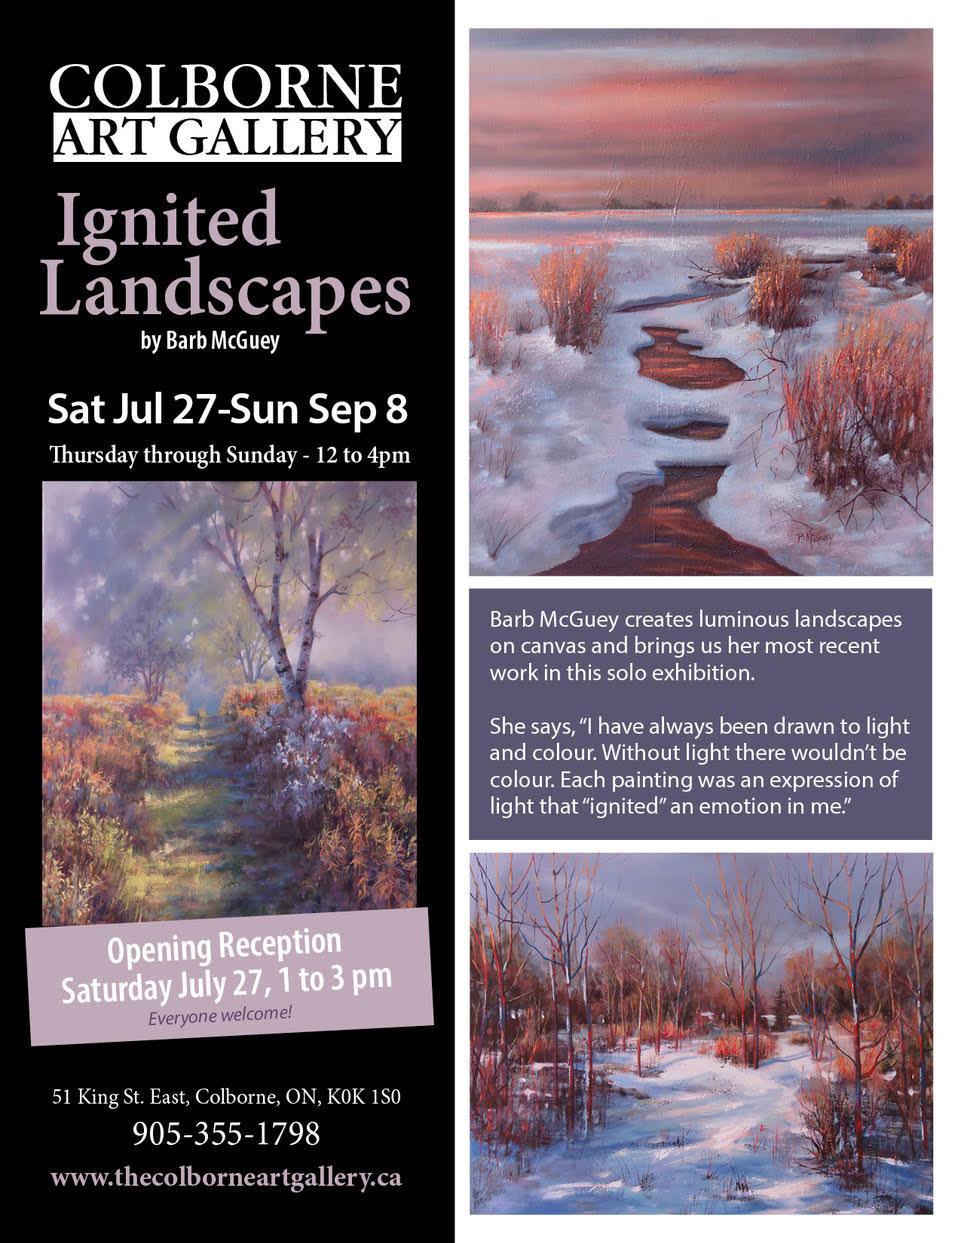 Ignited Landscapes by Barb McGuey. Sat Jul 27 - Sun Sep 8, 2019. Thursday through Sunday - 12 to 4 PM. Opening reception Saturday July 27, 1 to 3 PM. Barb McGuey creates luminous landscapes on canvas and brings us her most recent work in this solo exhibition. She says, I have always been drawn to the light and colour. Without light there wouldn't be colour. Each painting was an expression of light that ignited an emotion in me.